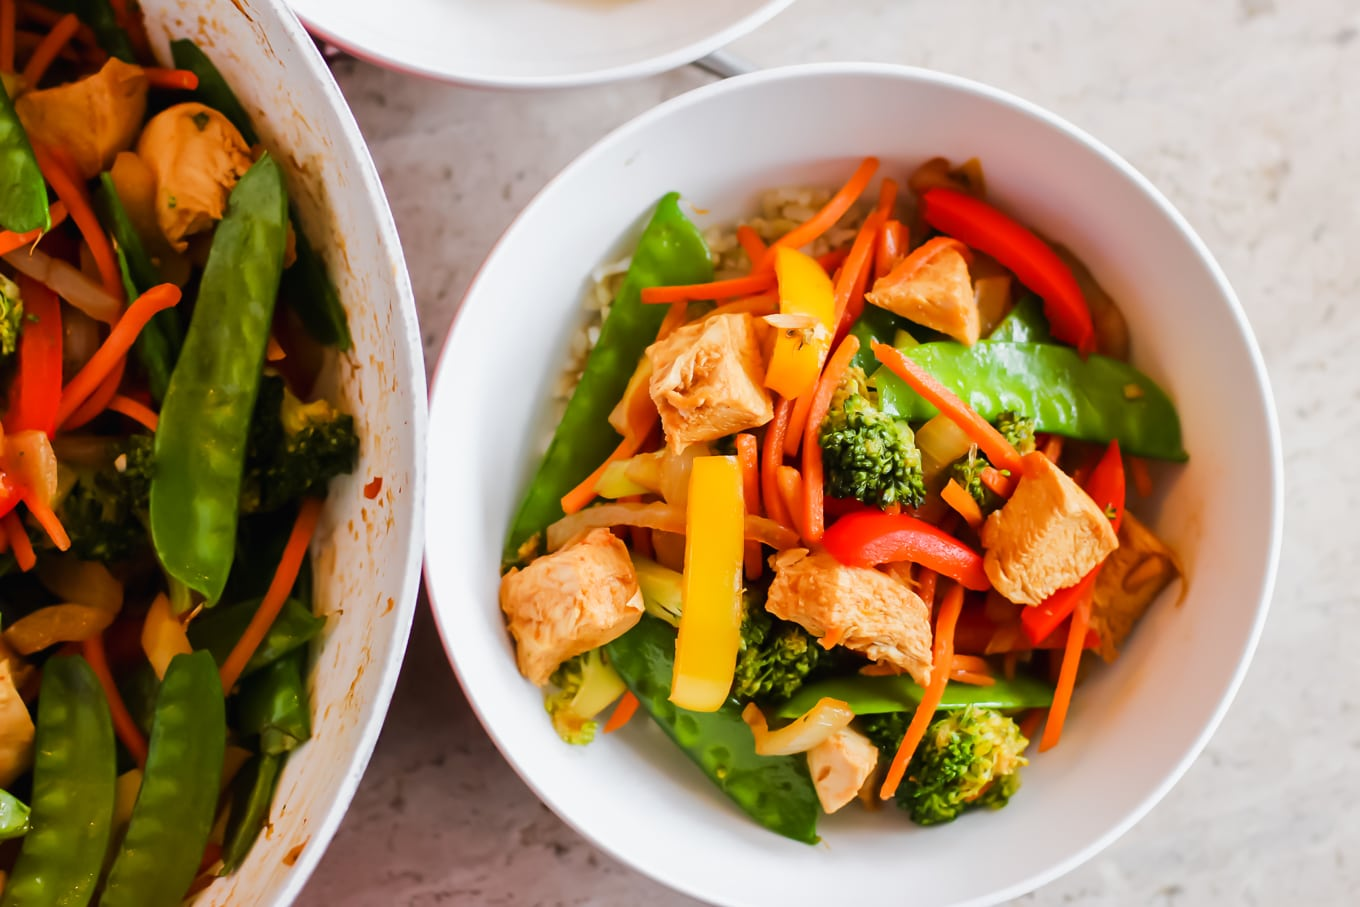 Chicken Veggie Stir Fry Recipe by Lake Shore Lady